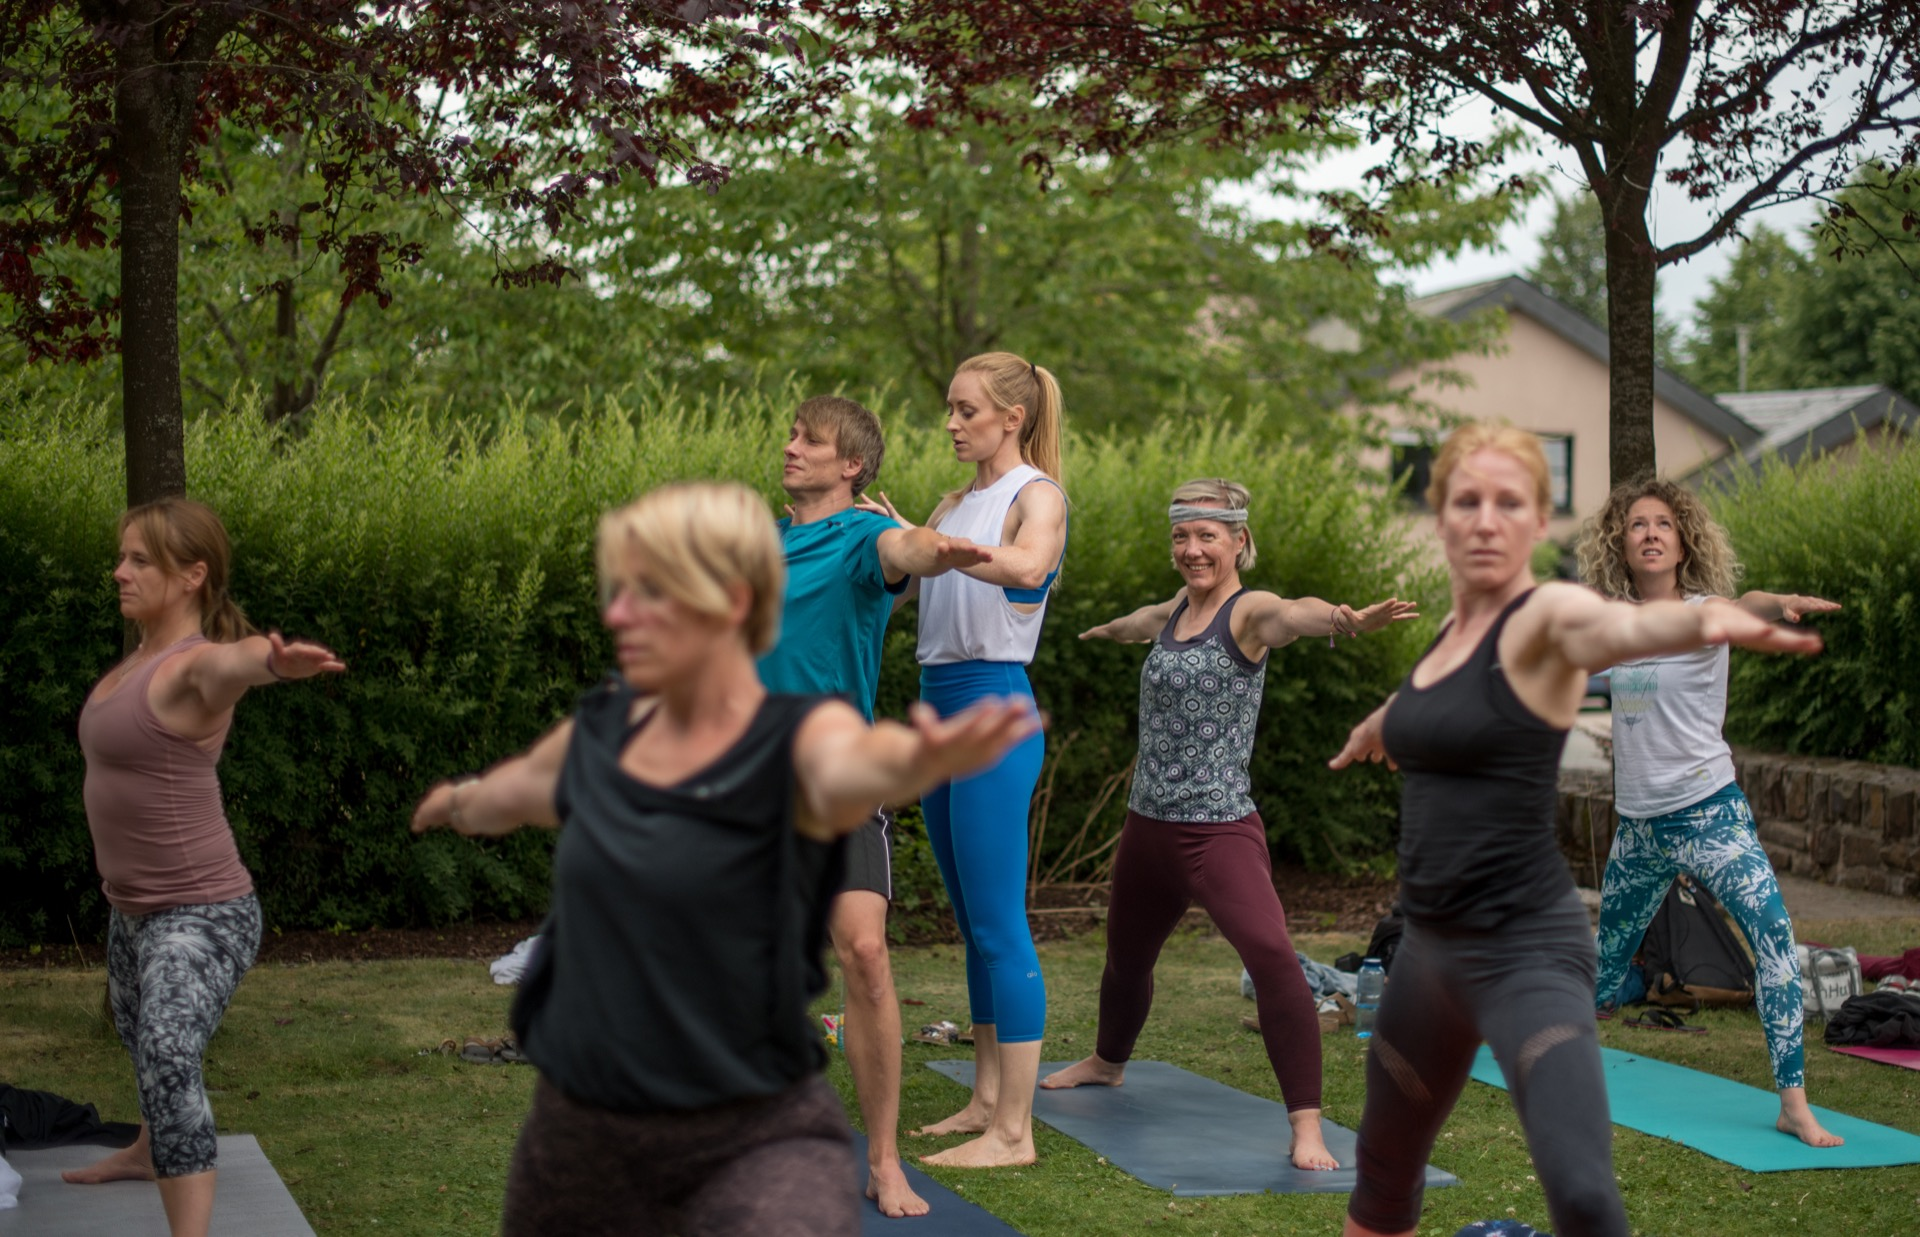 Hie-Kim-Friends-2019-Yoga-Retreat-Alina-Matis-Photography-132 - Hie Kim Yoga - Yoga Retreat - Yoga Workshops und Reisen